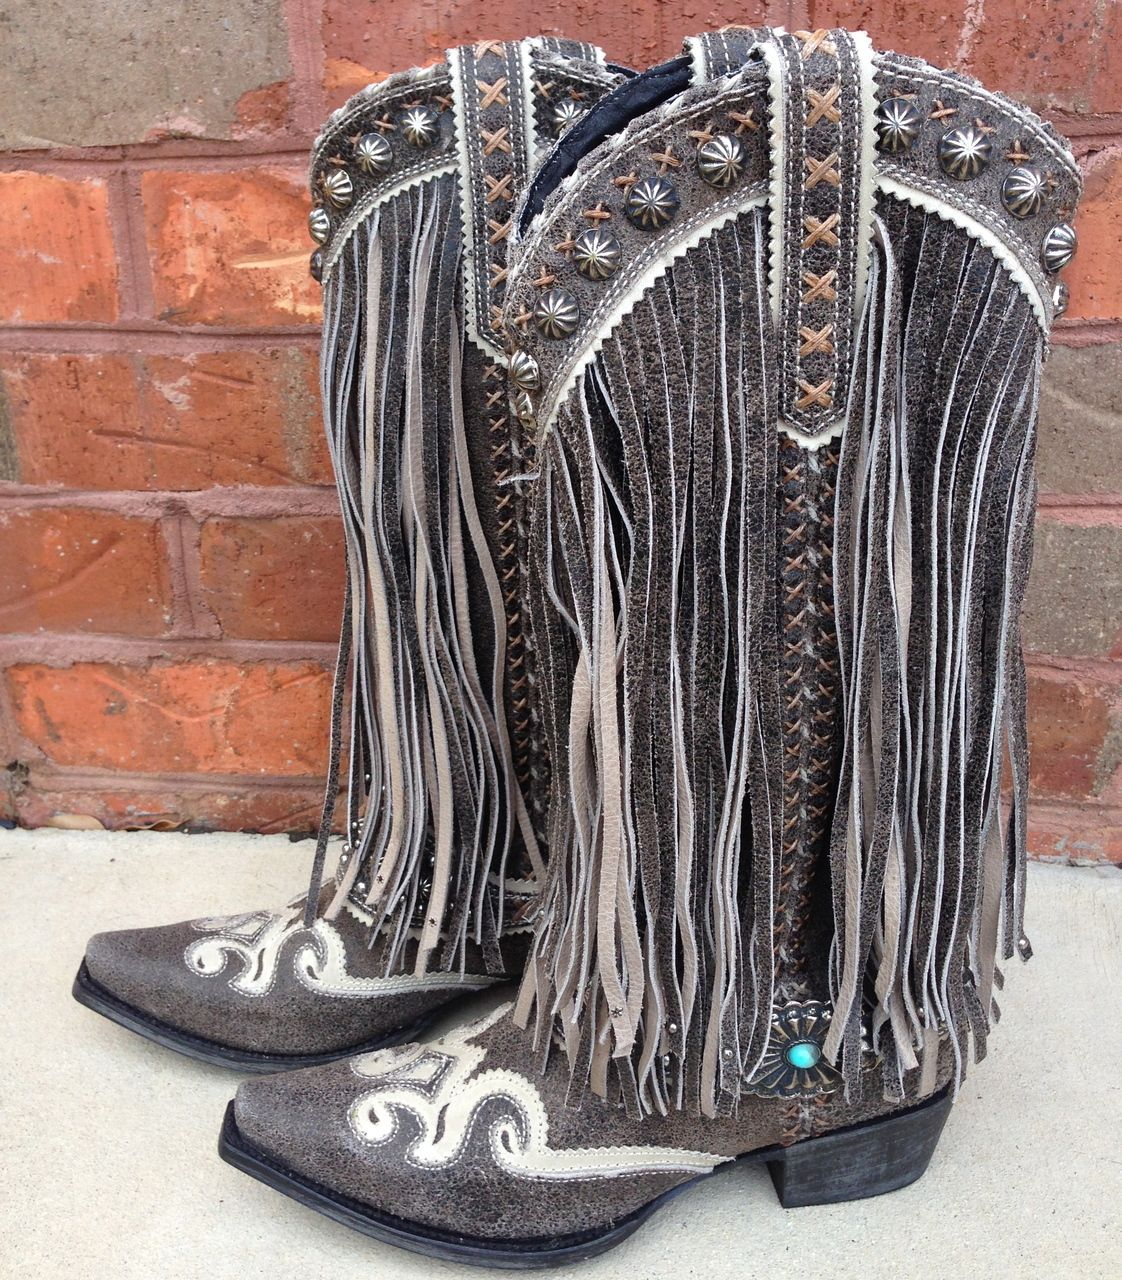 Rivertrail Mercantile Lane For Double D Ranch Prescott Fringed Dd9008c 560 00 Http Www Rivertrailmerca Leather Western Boots Boots Boots Cowgirl Country